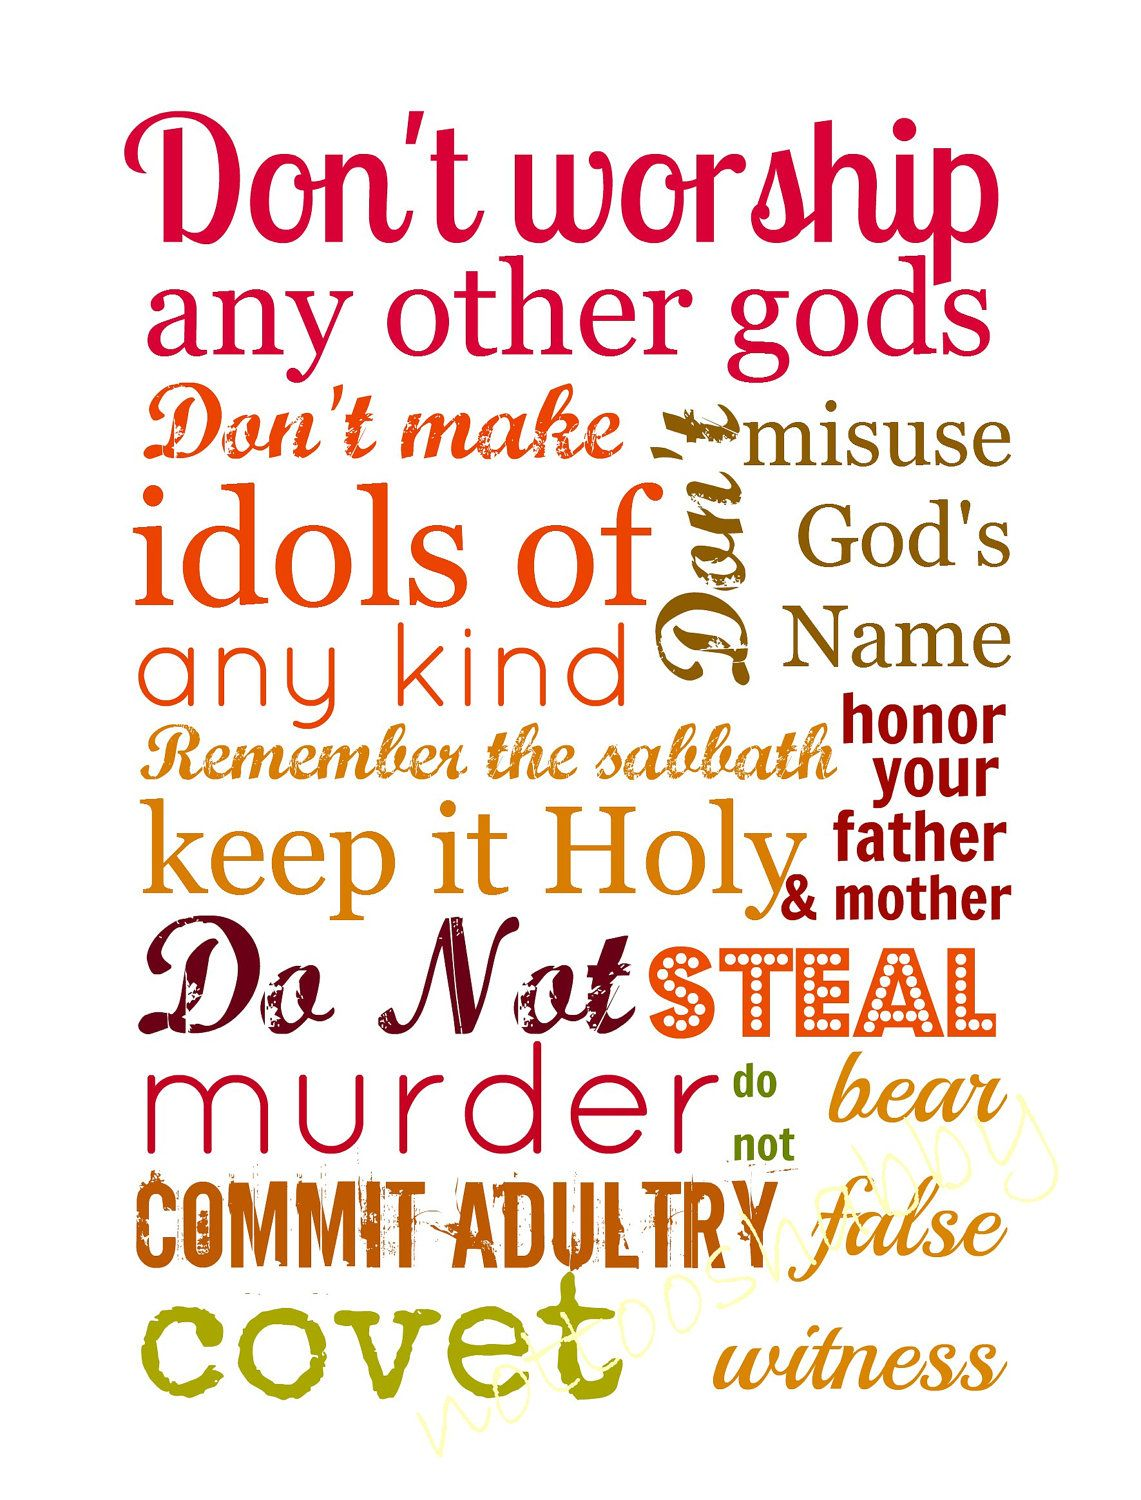 Ten Commandments Quotes: Pin By Marlon Timones On Quotes Of (Biblical) Inspiration